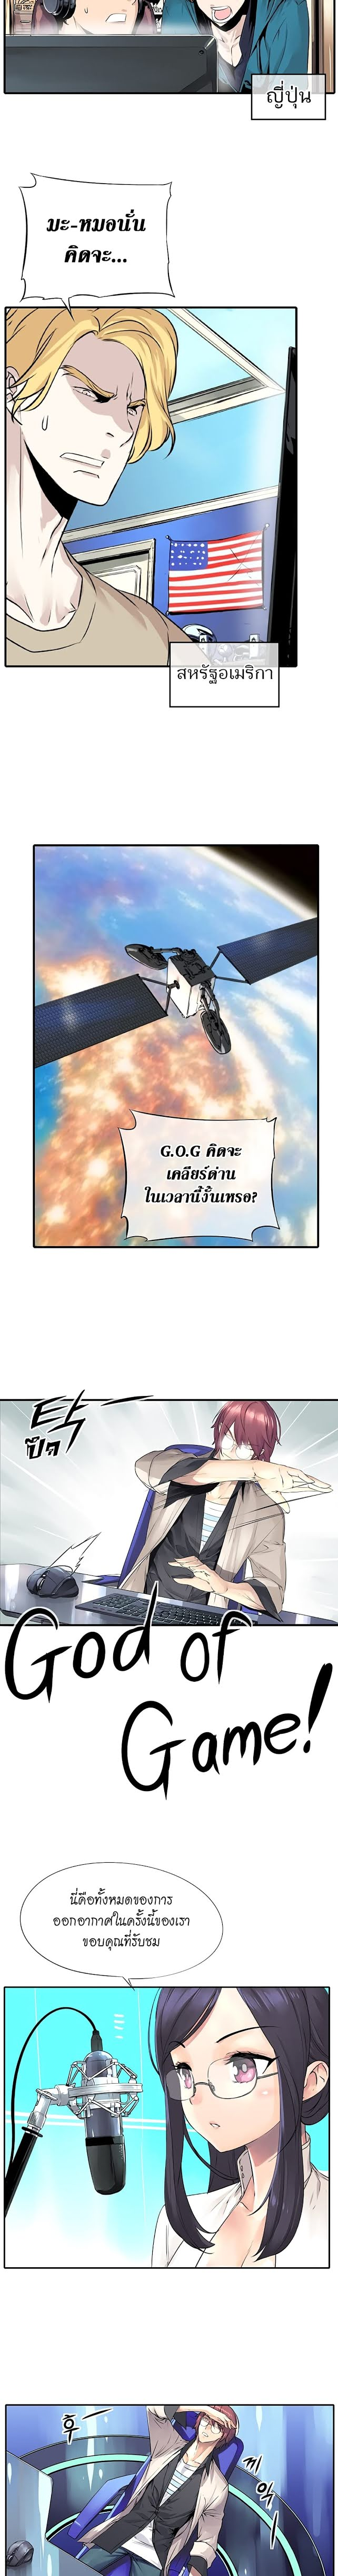 """The God of """"Game of God""""-ตอนที่ 2"""